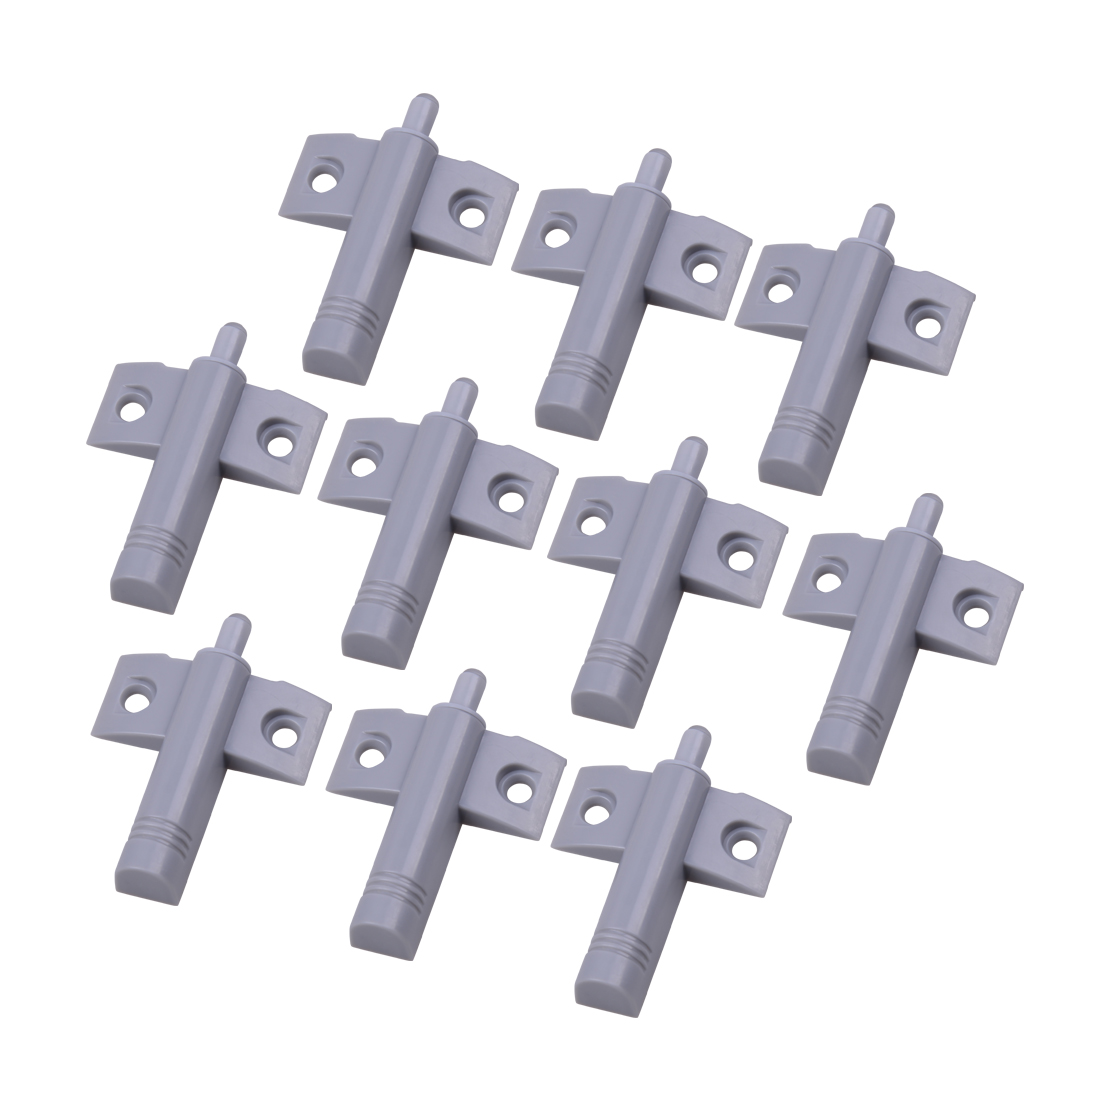 LETAOSK New 10pcs Grey Soft Close Silence Stop Closer Cushion Damper Buffer With Screws For Kitchen Door Cabinet Cupboard Drawer